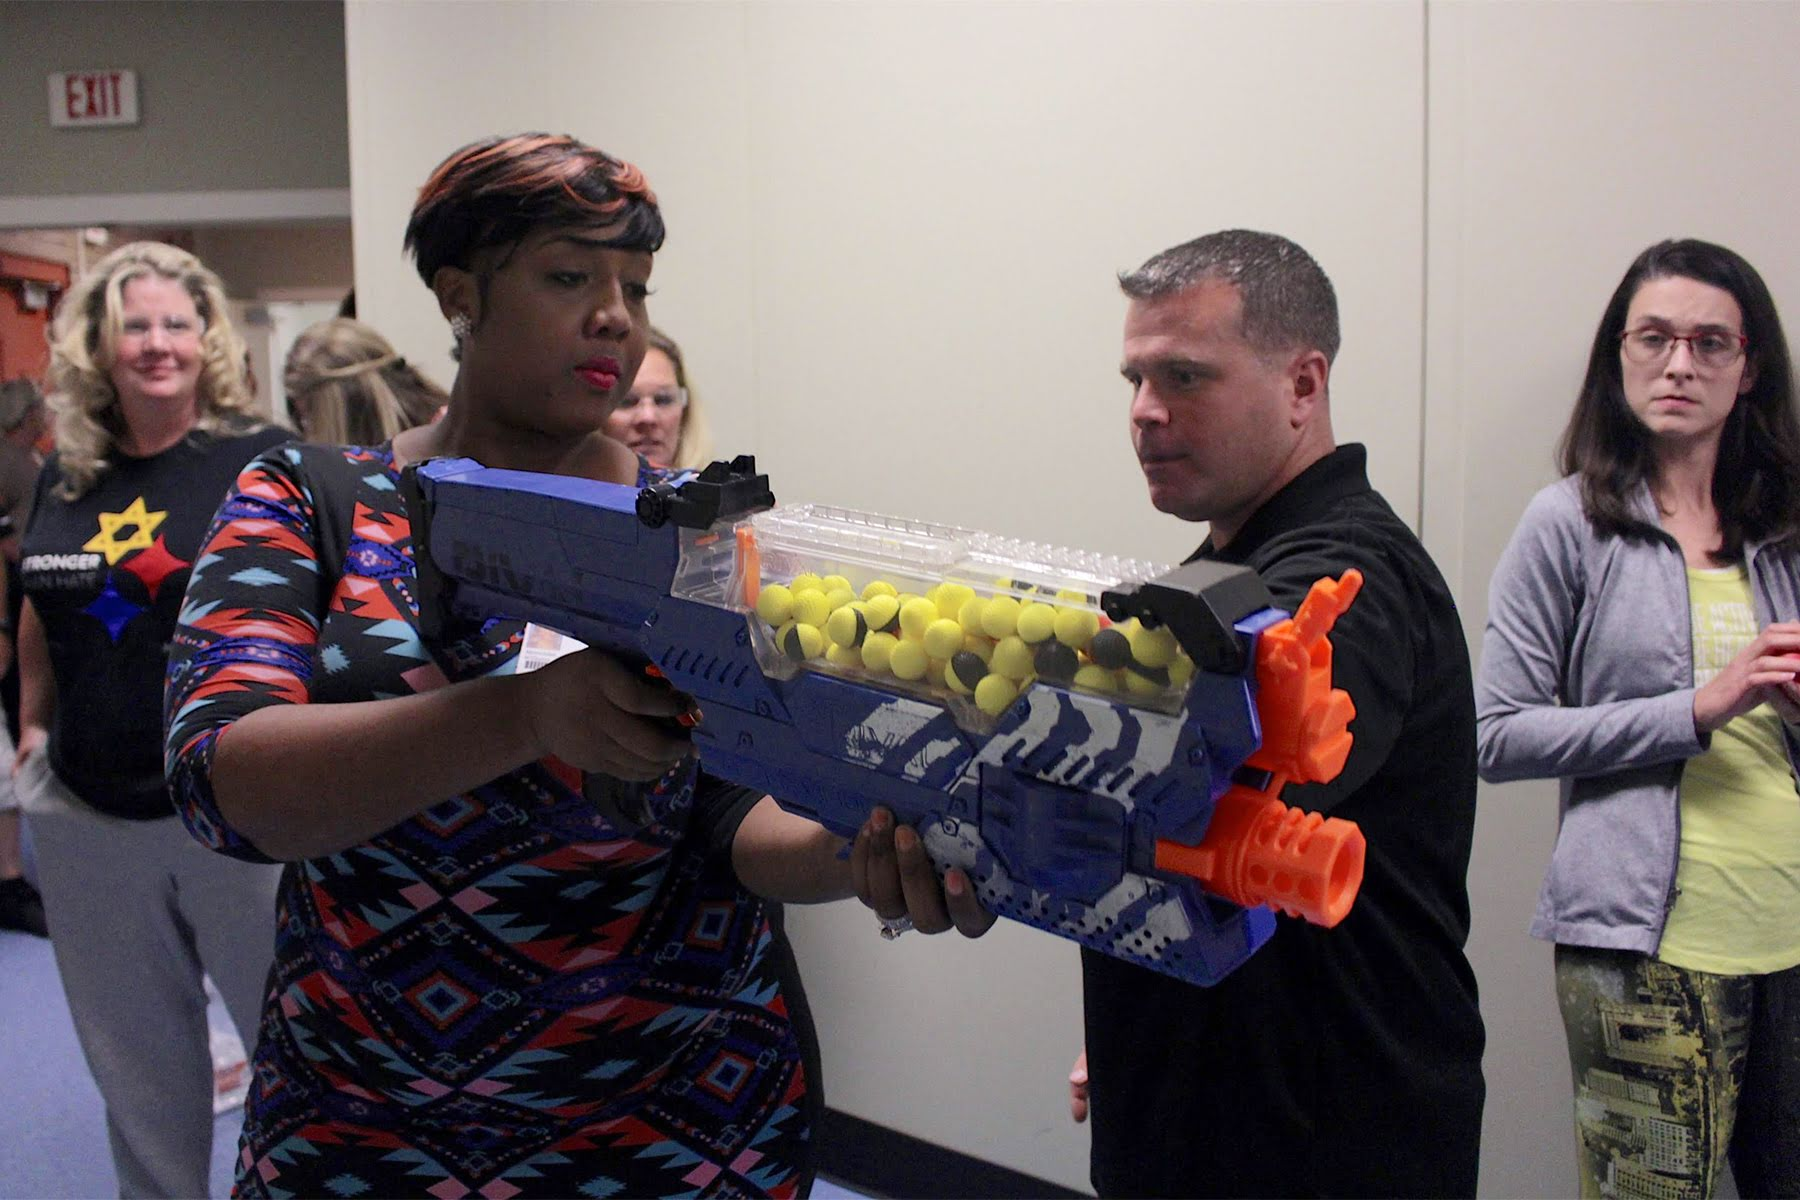 ALICE Trainer, John Lubawski instructs Merecedes Williams, a PPS employee how to use Nerf gun prior to an active shooter drill. (Photo by Jay Manning/PublicSource)